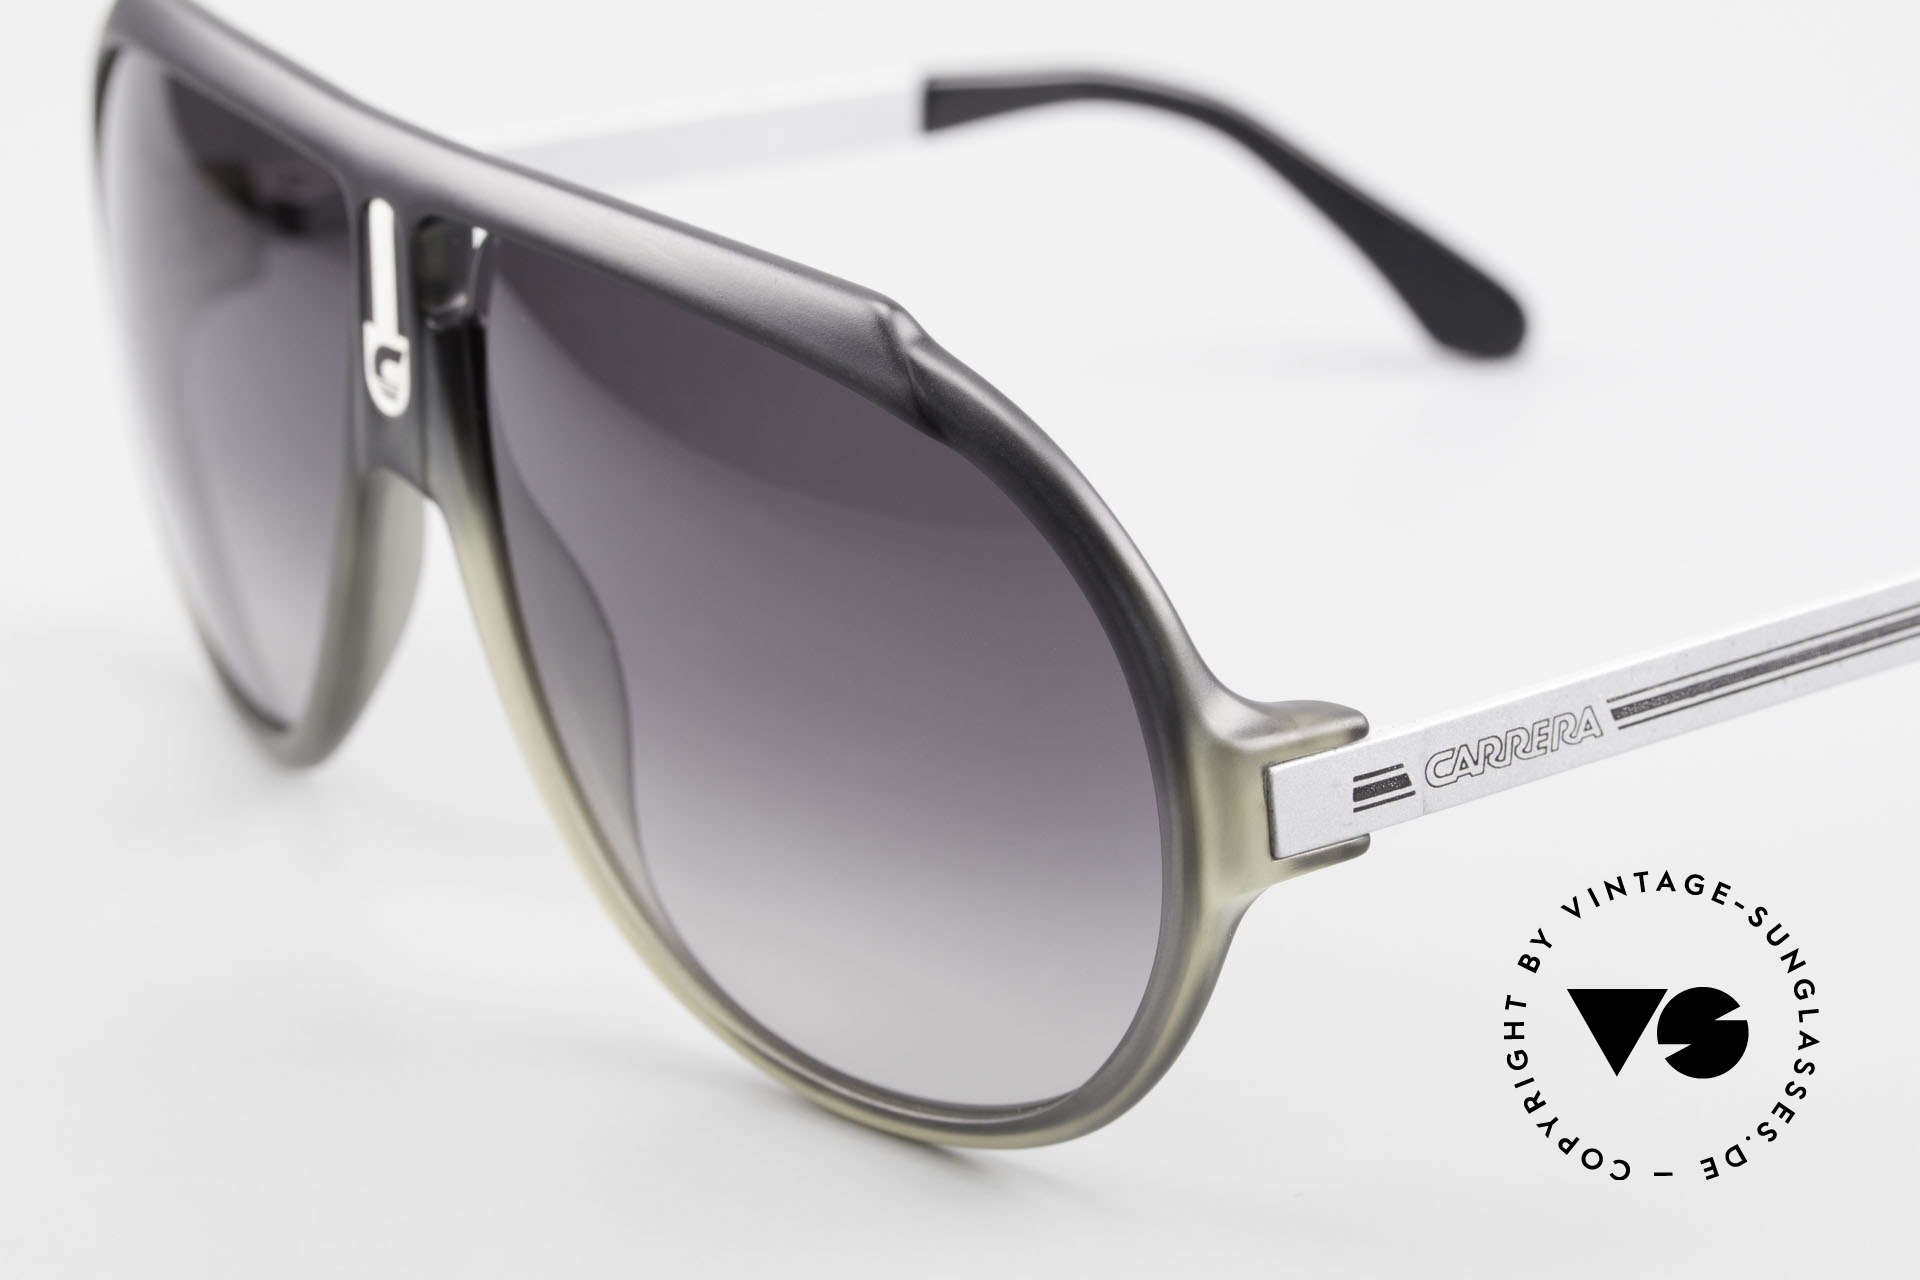 Carrera 5512 80's Miami Vice Sunglasses, cult object and sought-after collector's item, worldwide, Made for Men